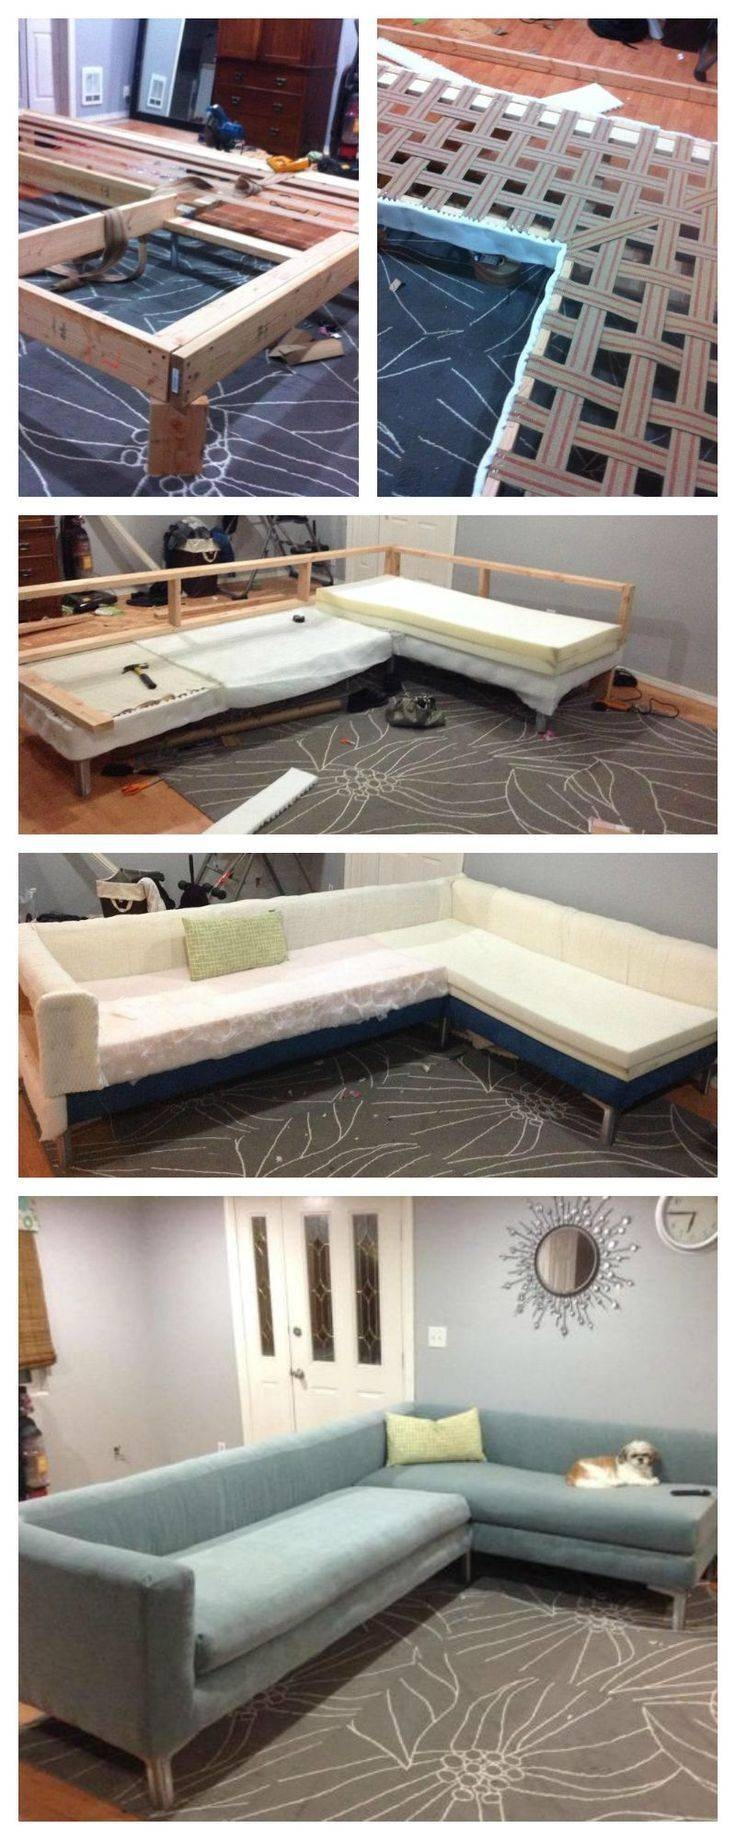 Best 20+ Diy Sofa Ideas On Pinterest | Diy Couch, Rustic Sofa And with regard to Diy Sofa Frame (Image 8 of 30)